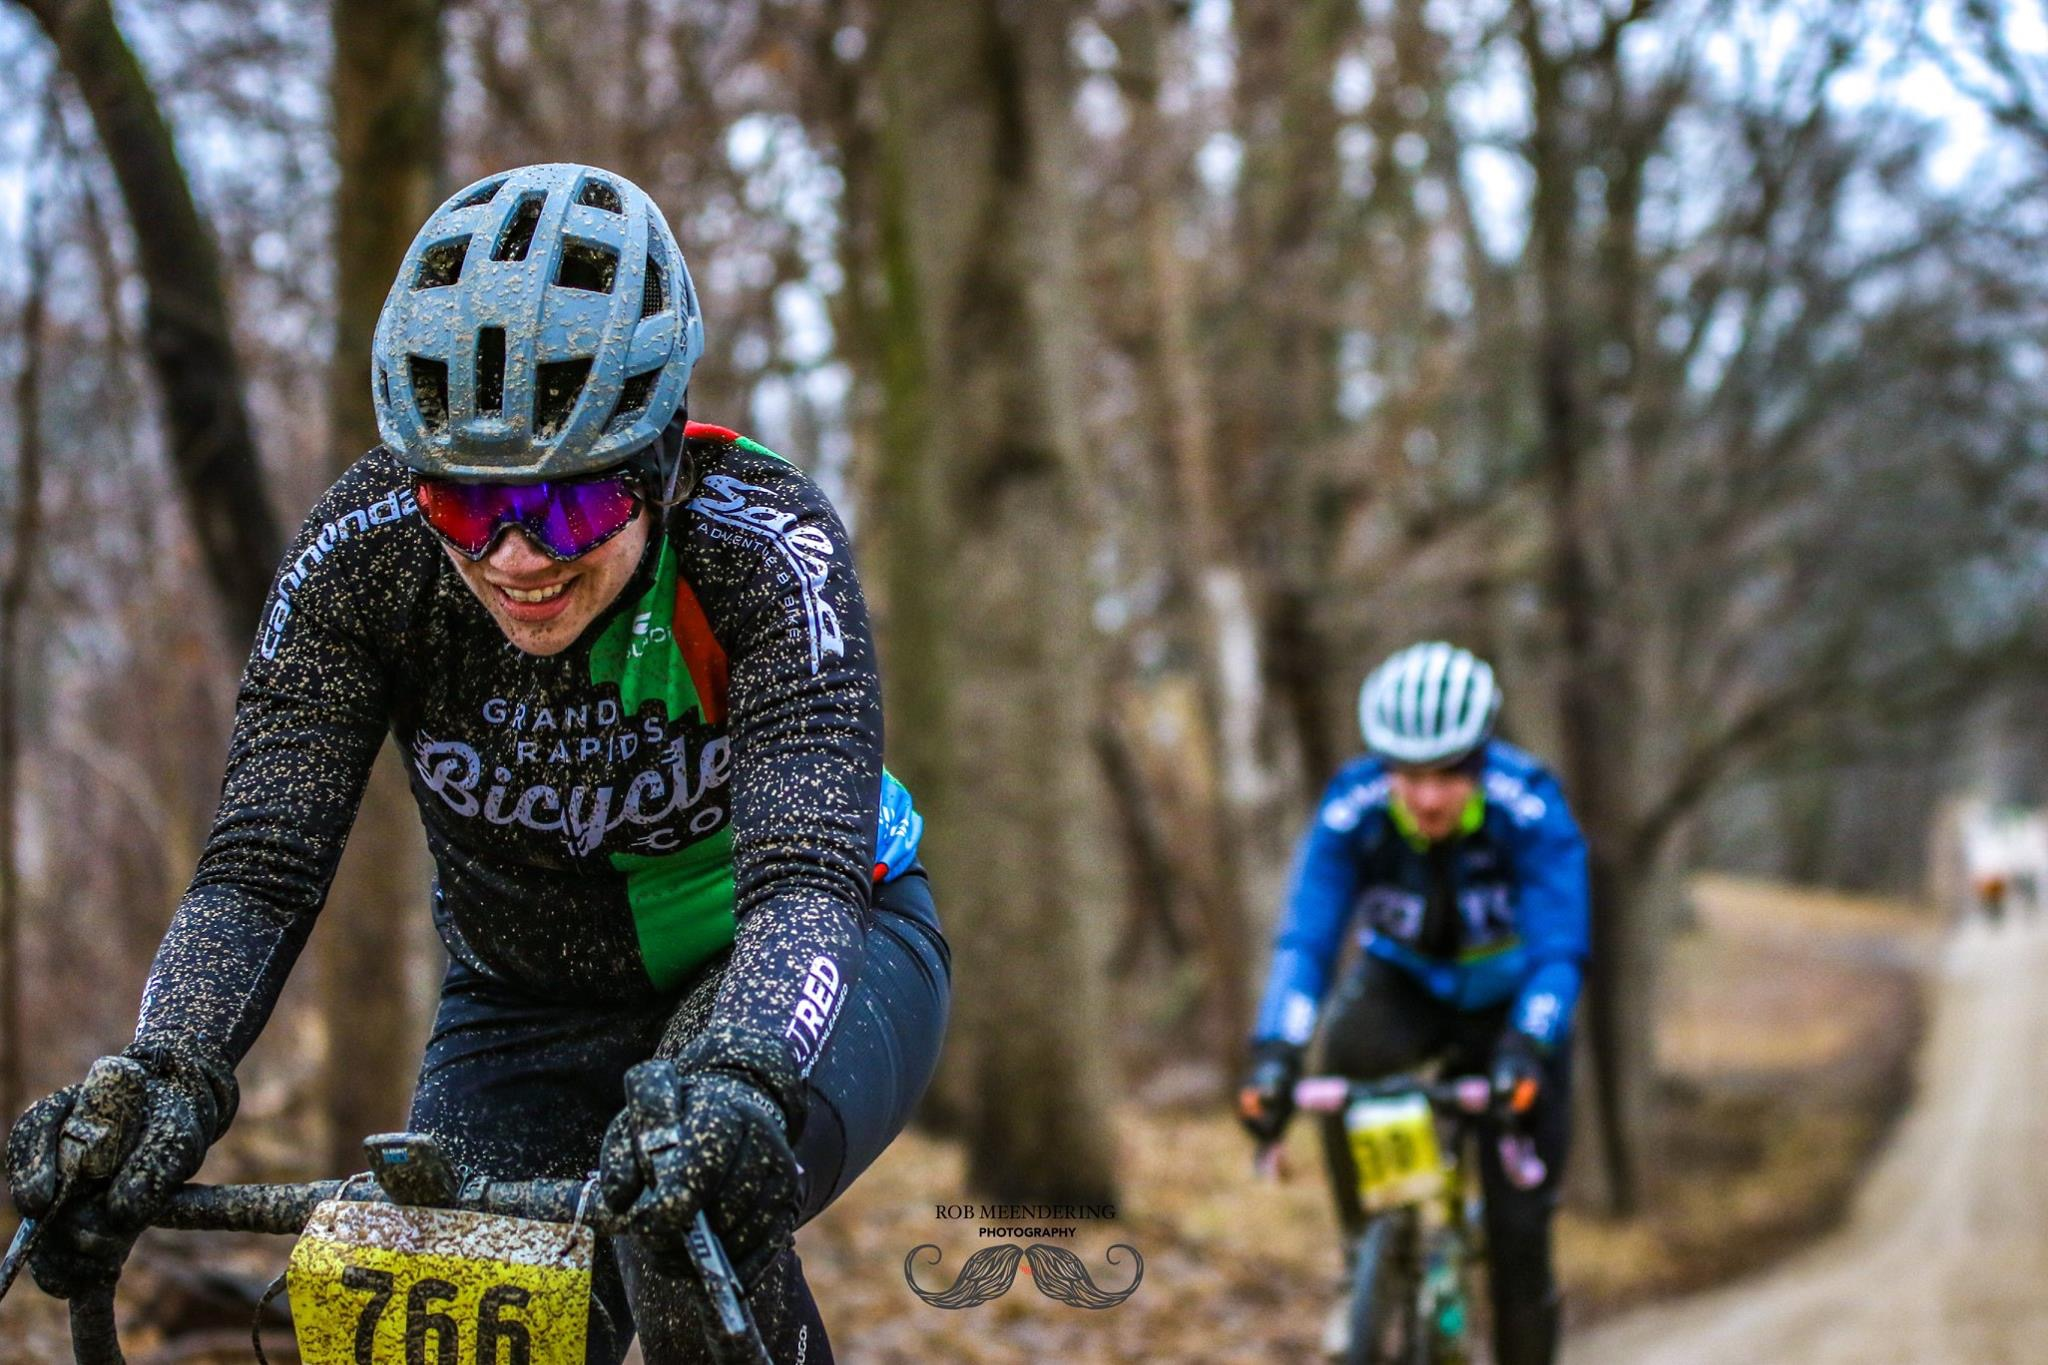 Emily Mileski racing the Dirty Thirty - Photo Credit: Rob Meendering Photography